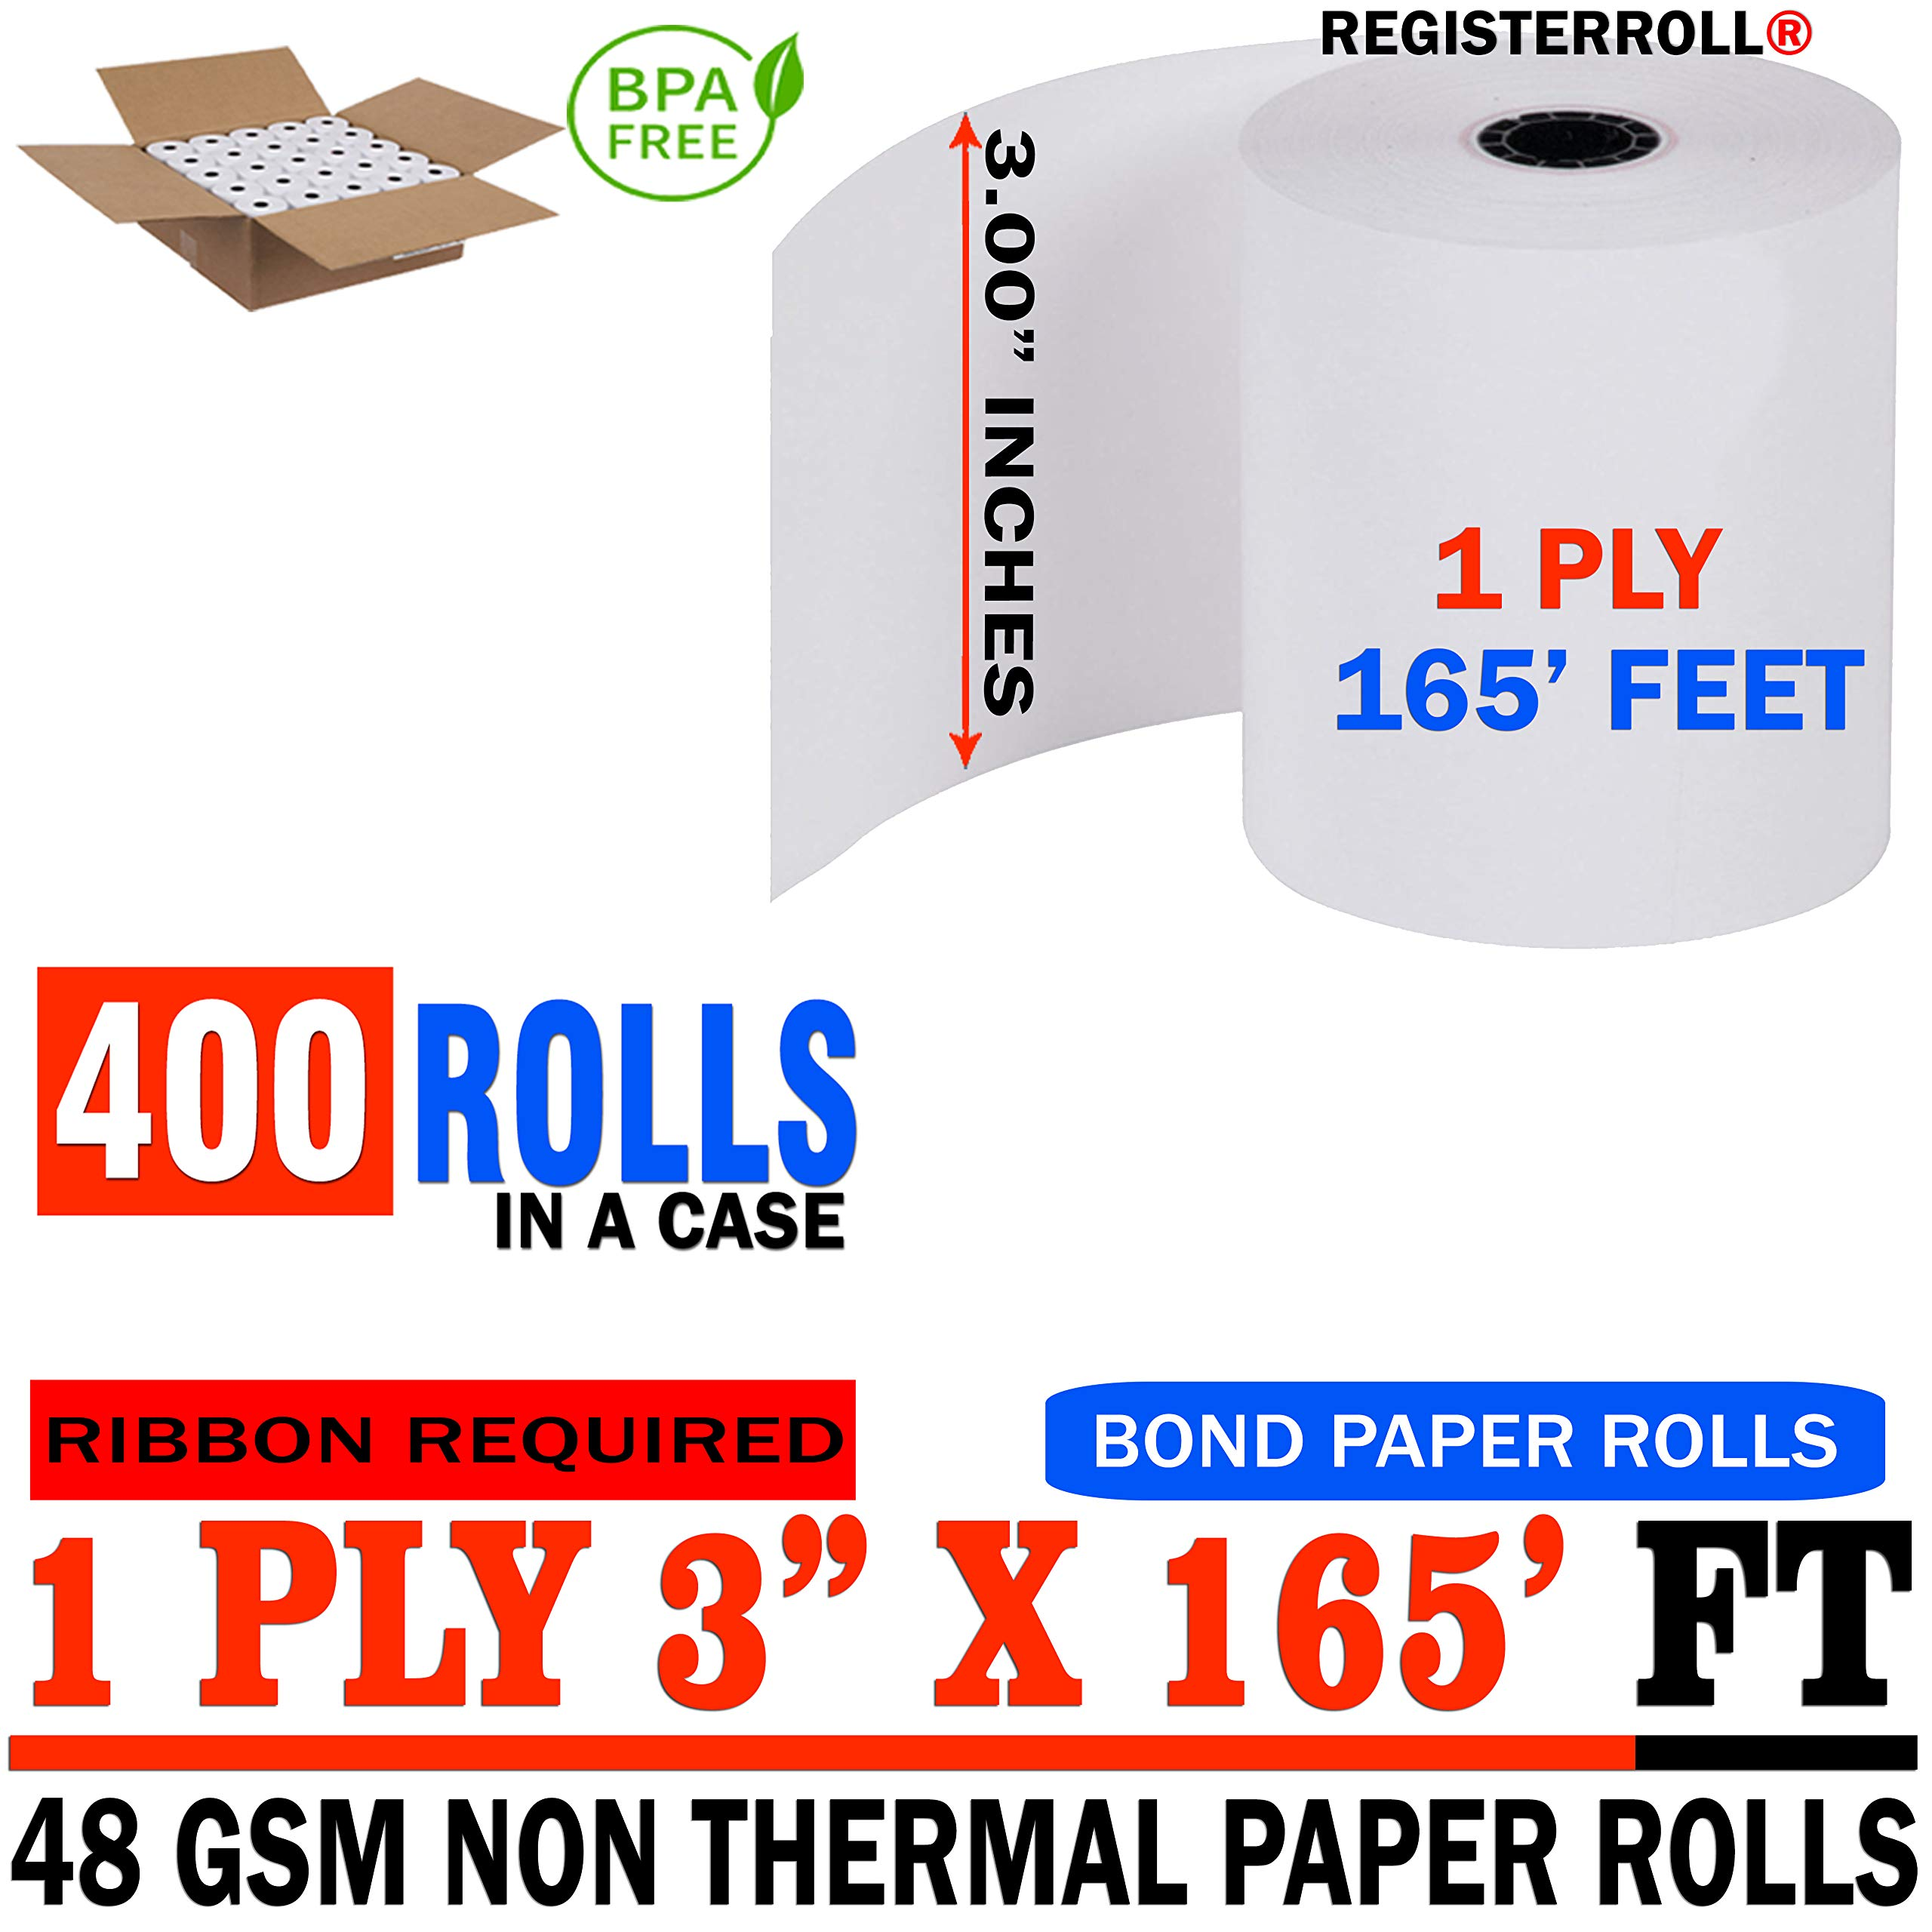 Star MICRONICS SP700 (All) 1-Ply 3 inch x 165' Paper 400 Rolls | Premium Value Pack | from RegisterRoll by REGISTERROLL (Image #1)